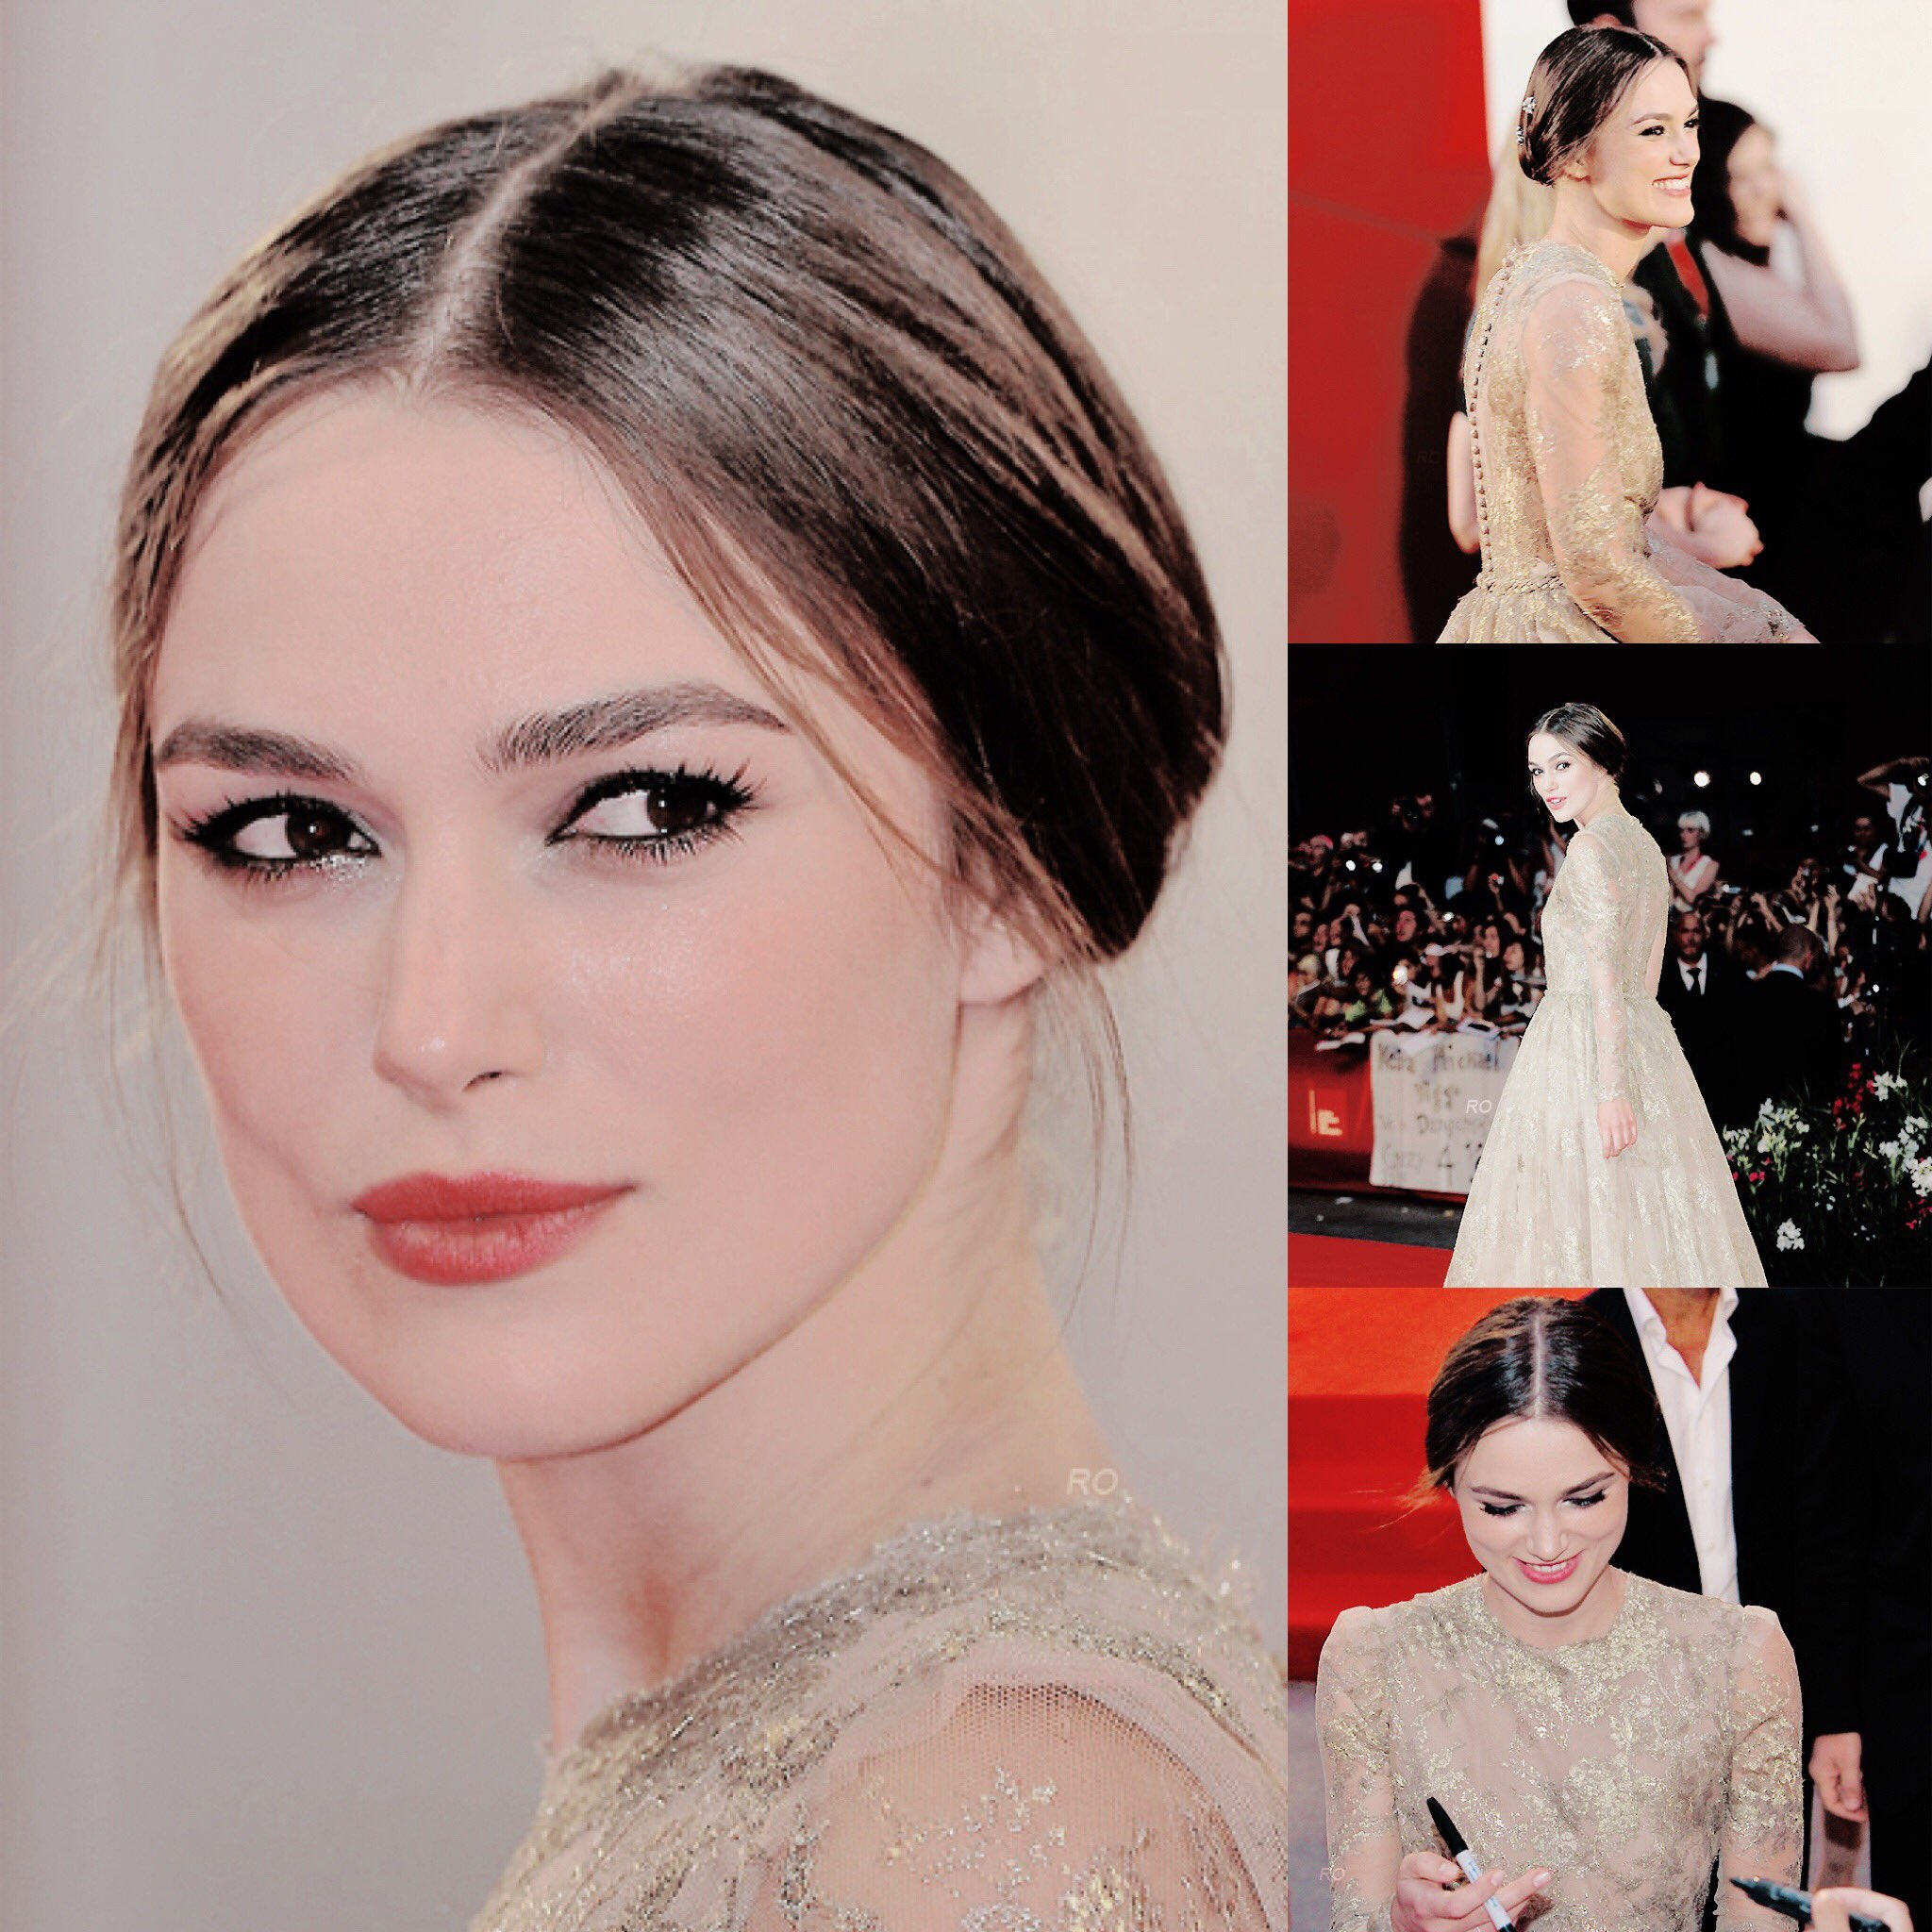 Happy birthday to my favorite actress, Keira Knightley, who turns 32 today